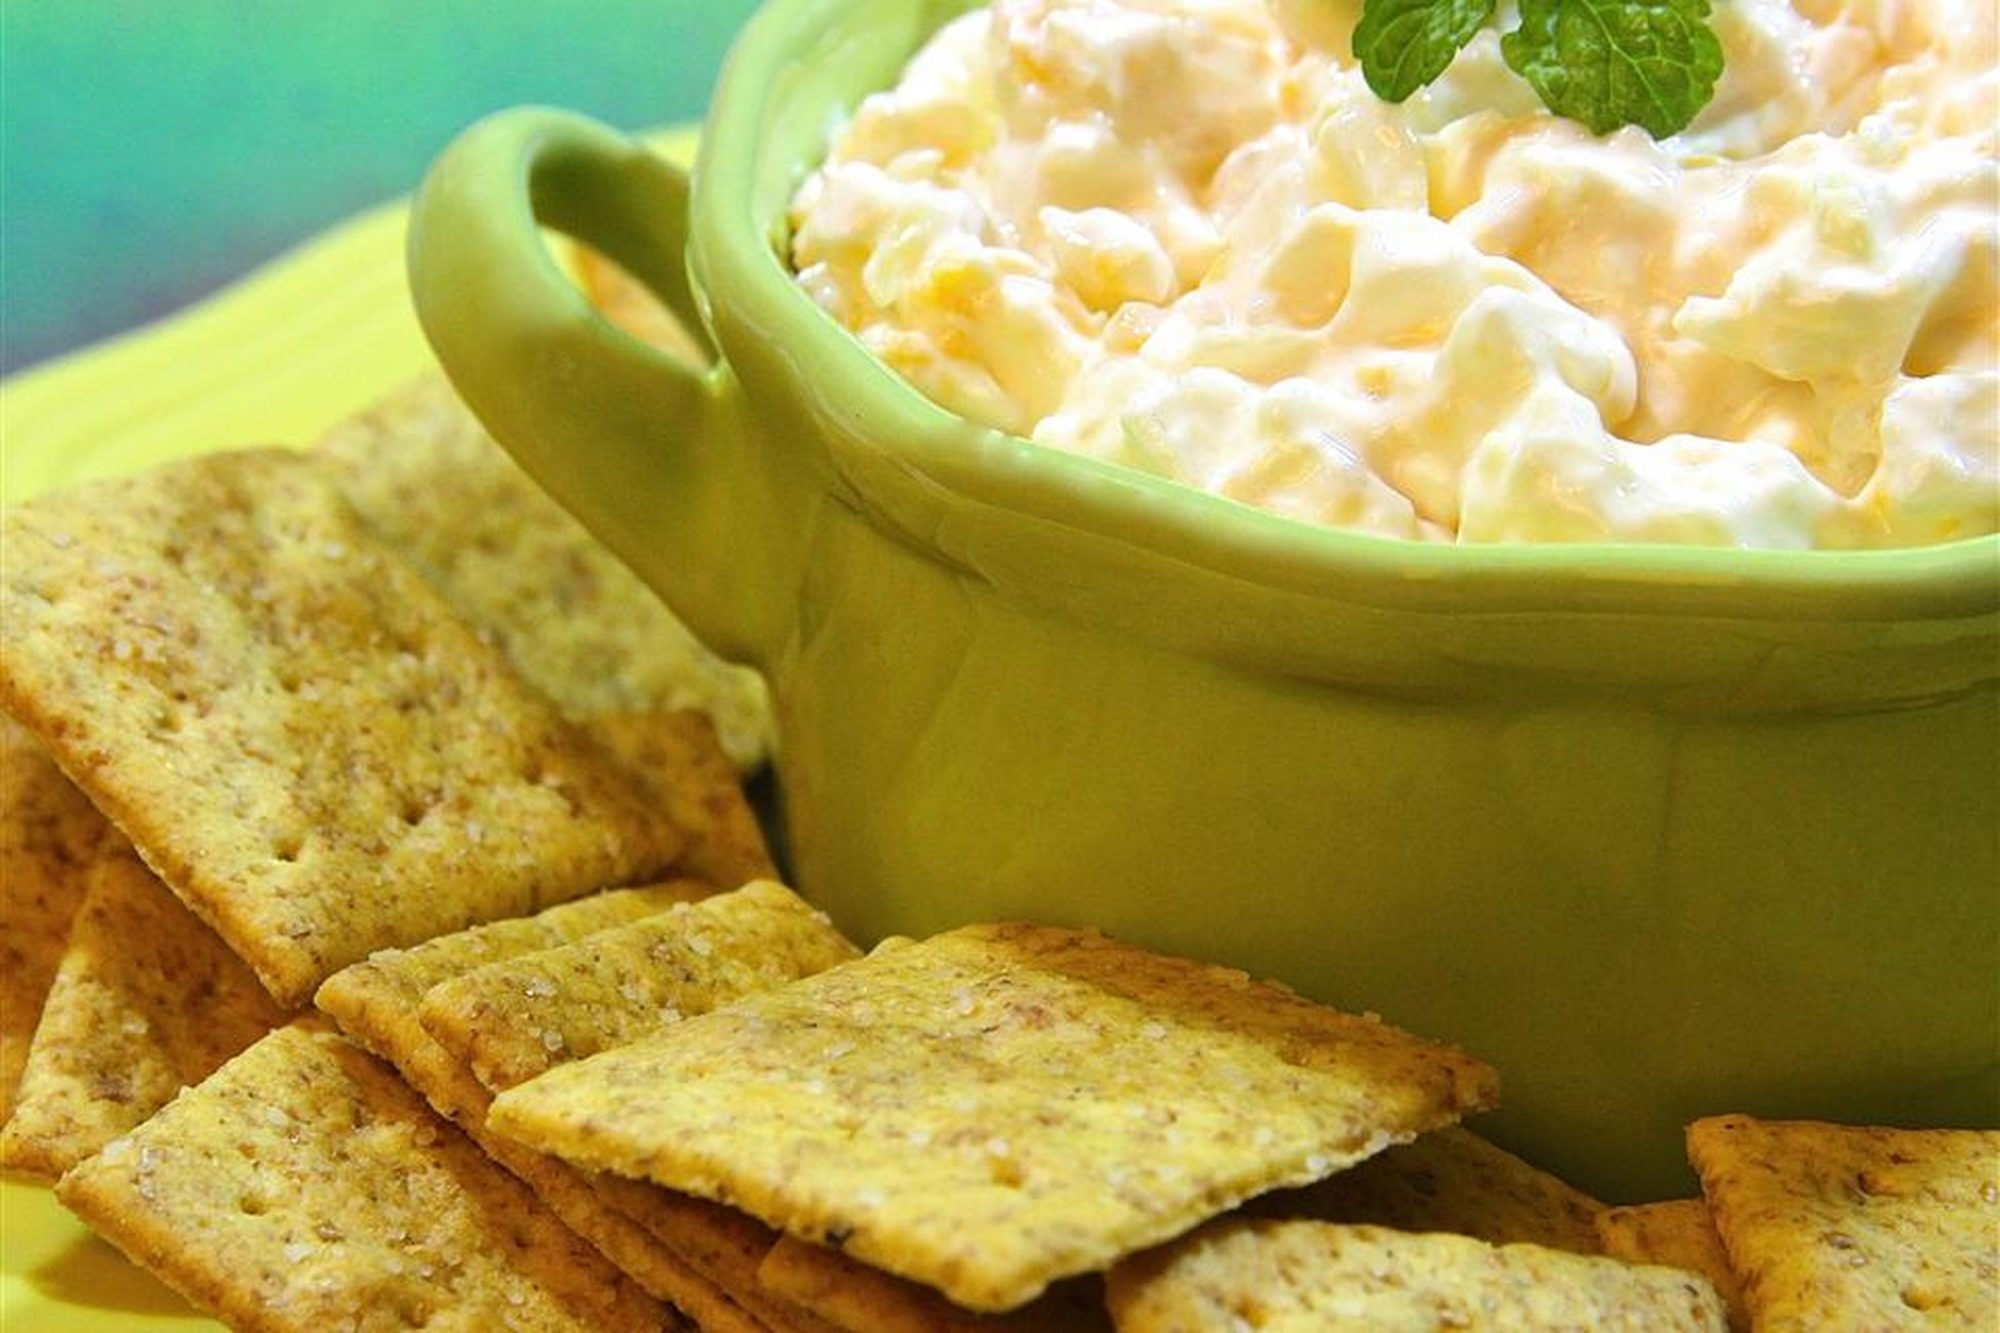 Pineapple and Cheese Spread